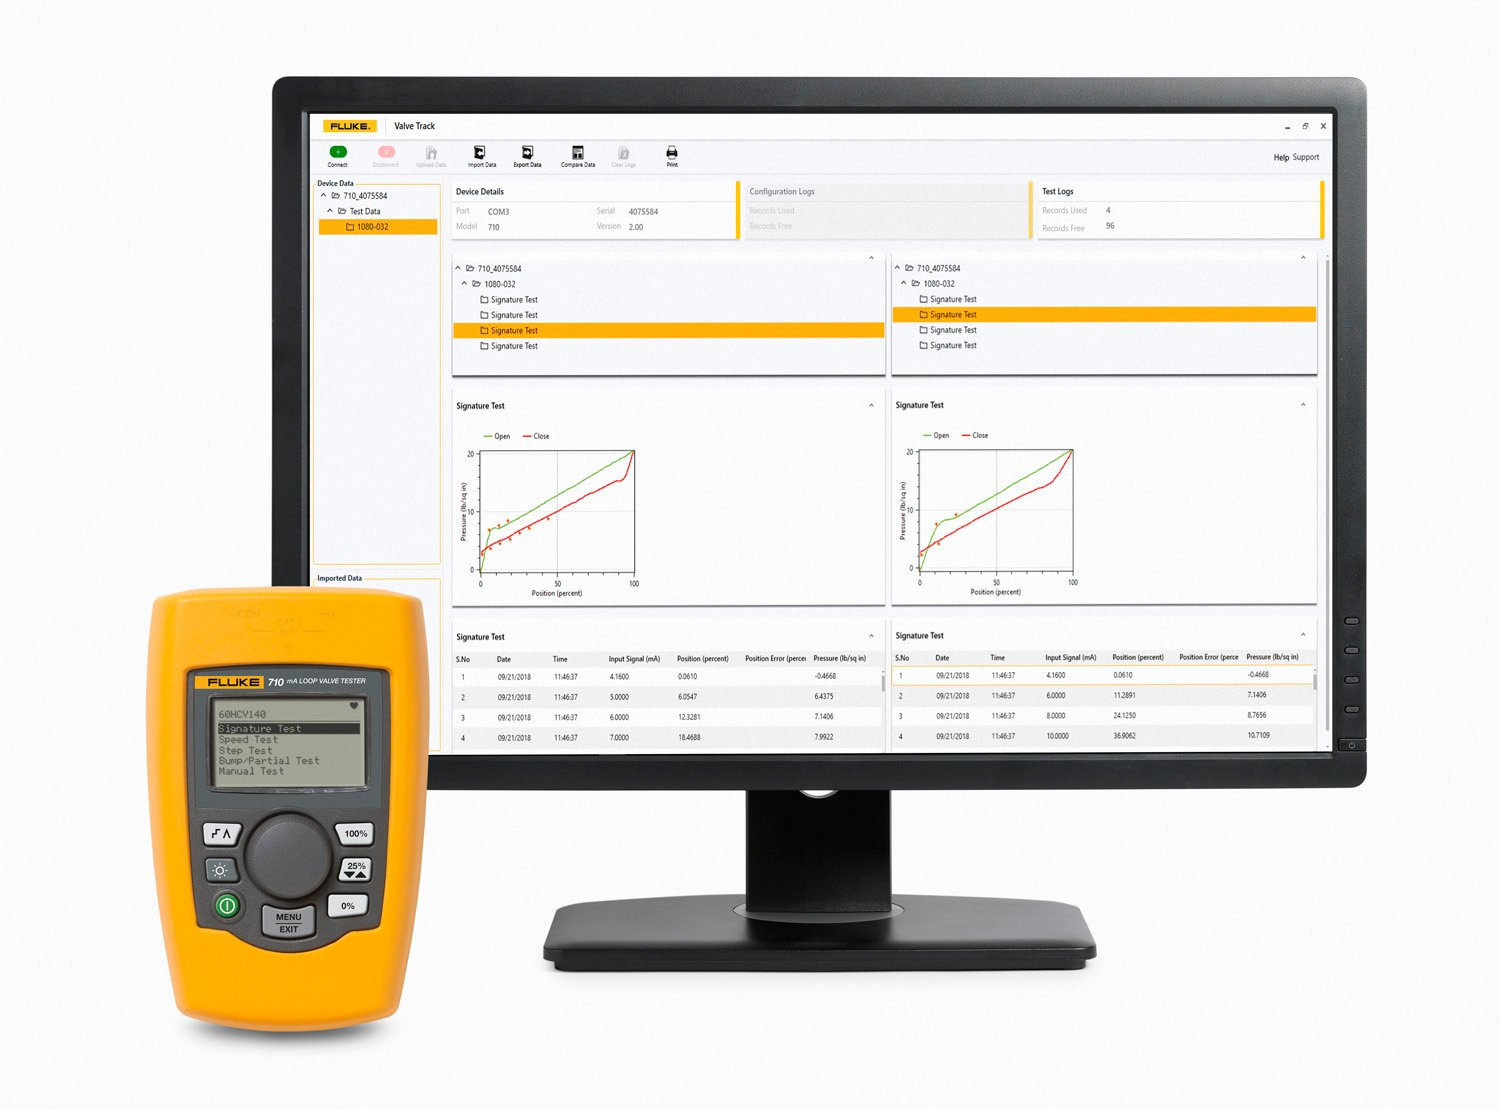 Fluke 710 mA Loop Valve Tester next to computer desktop screen showing ValveTrack Software